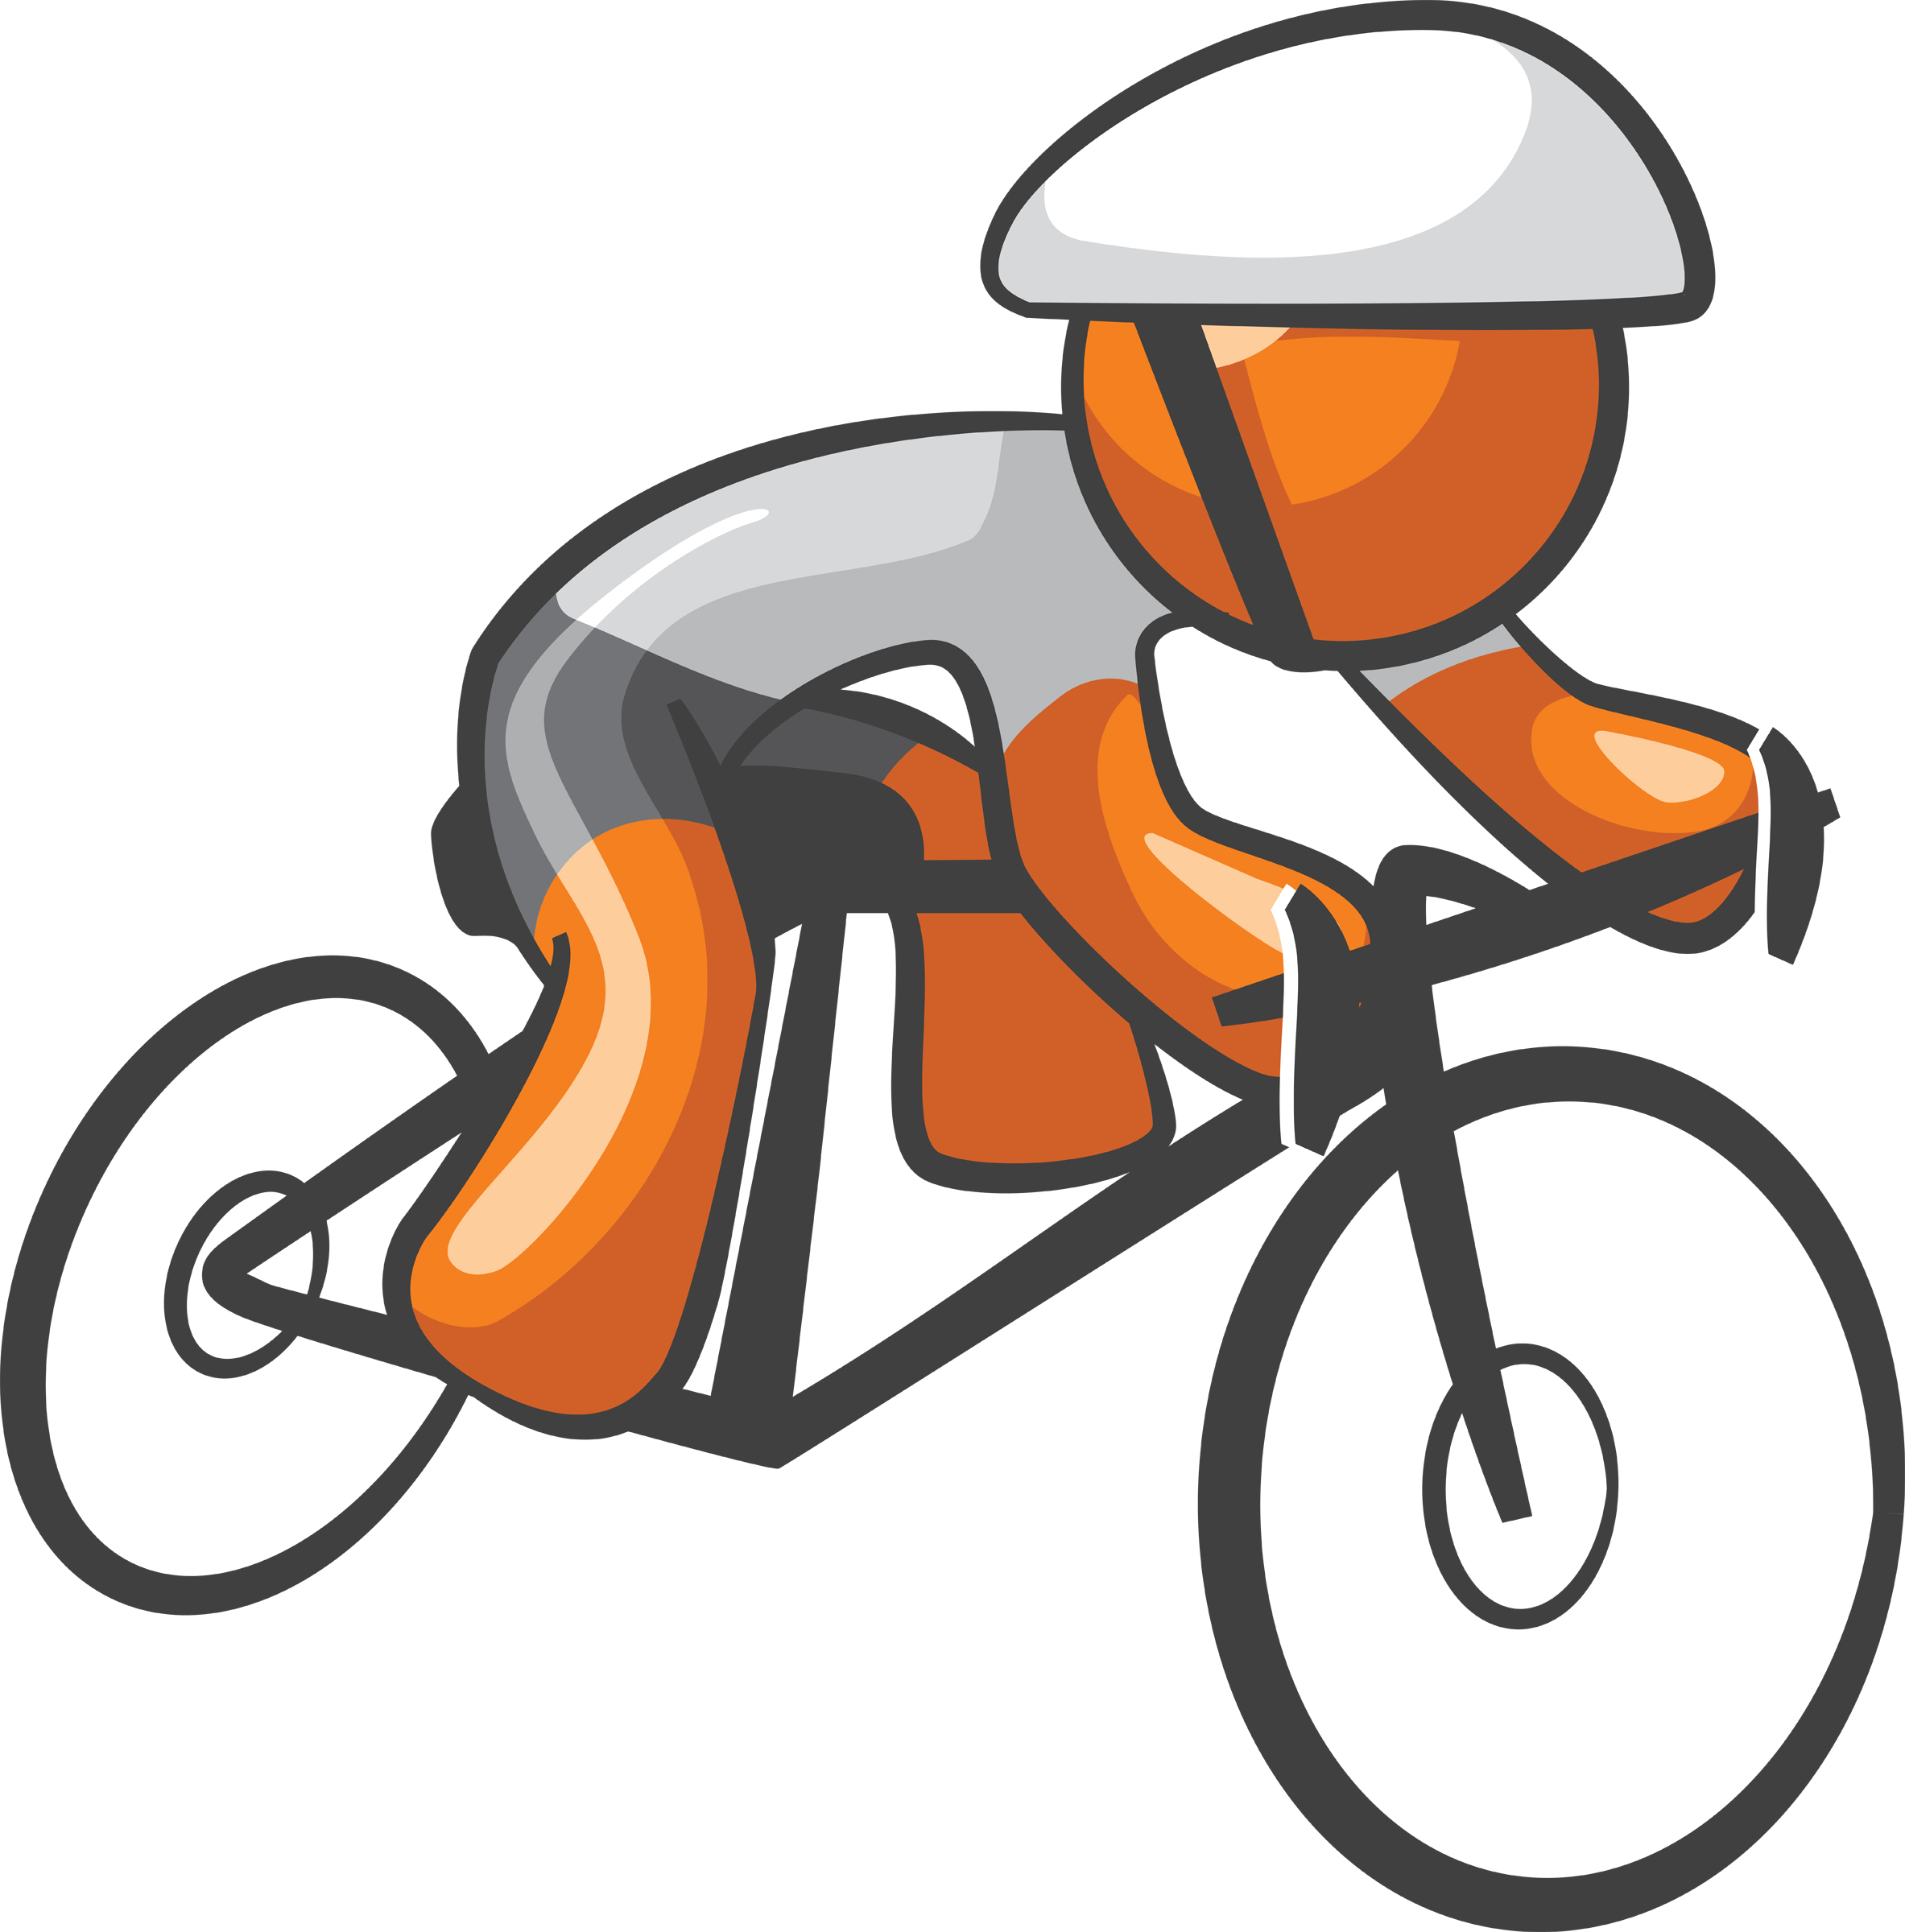 Bike Riding Clipart At GetDrawings